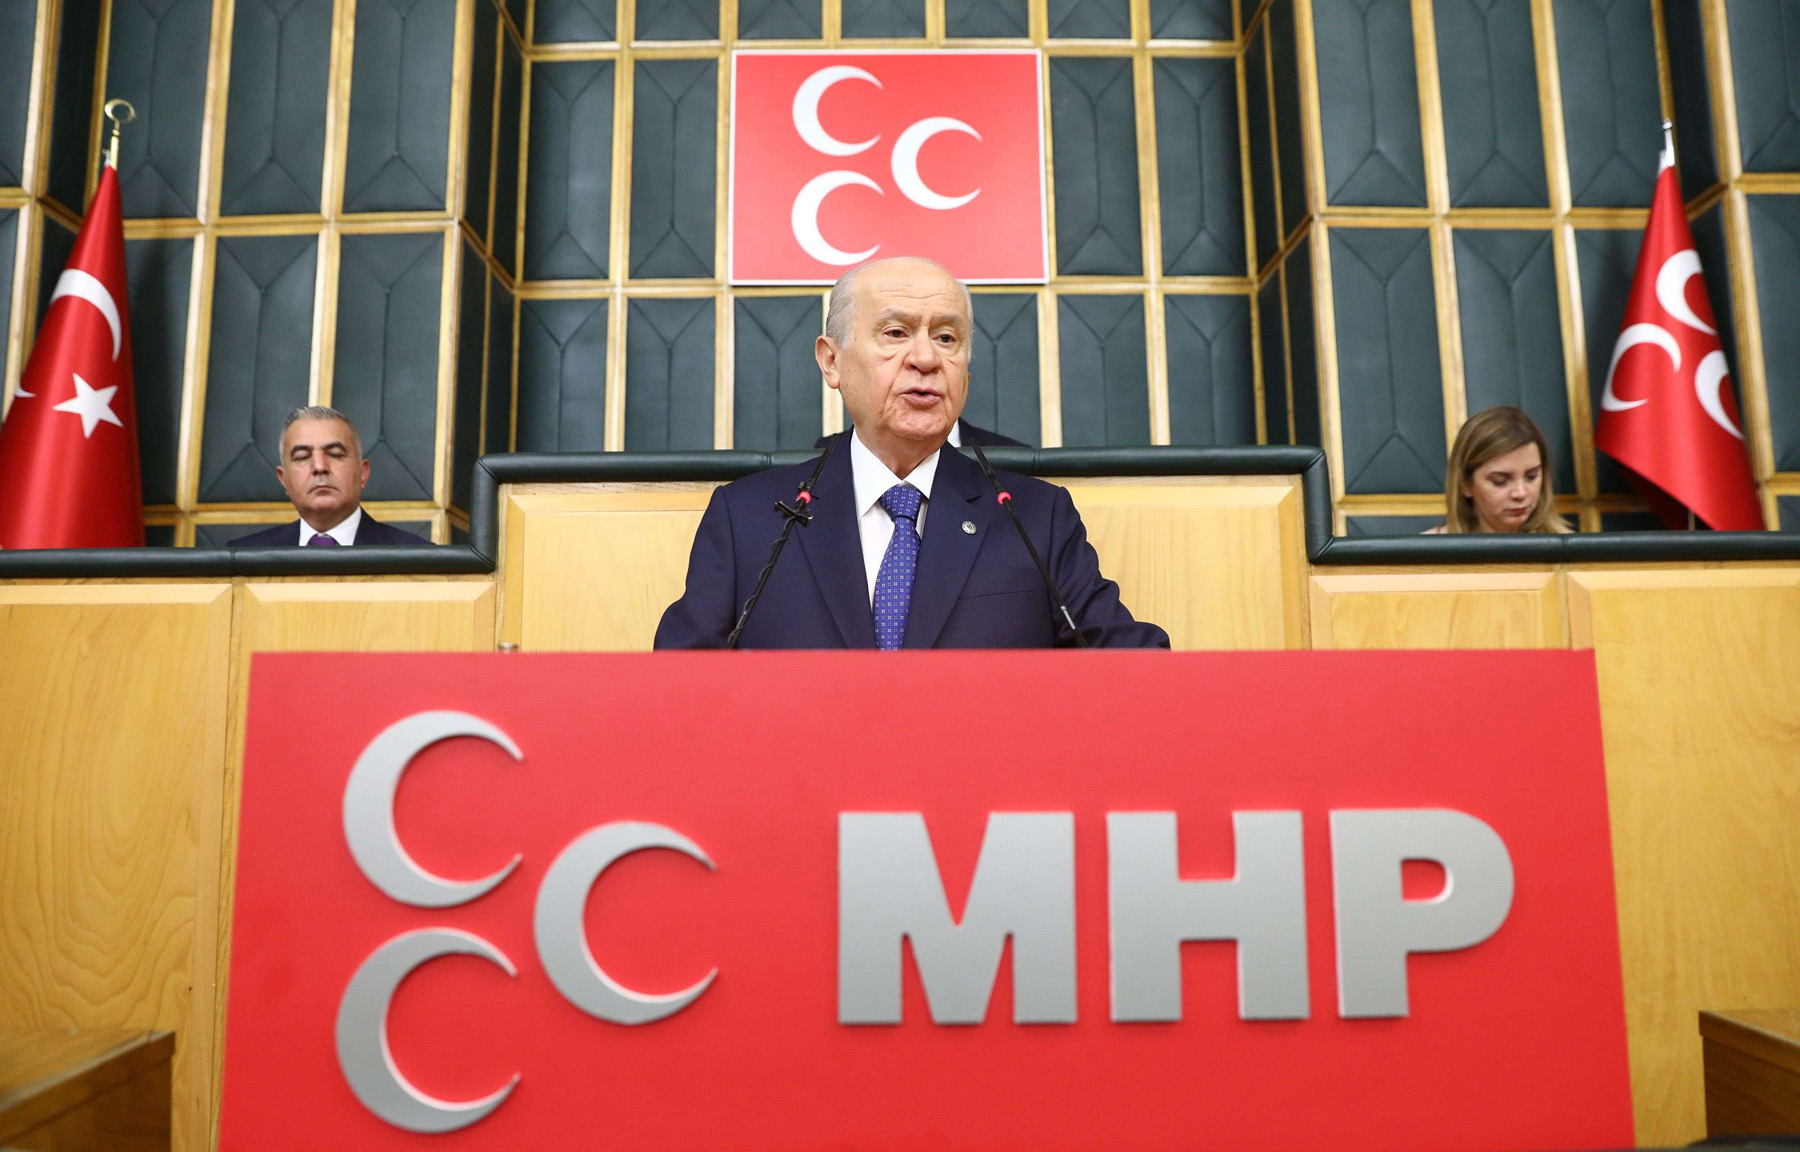 Turkey's Nationalist Movement Party's leader Devlet Bahceli speaks during a meeting in Ankara, on October 2. (AFP)